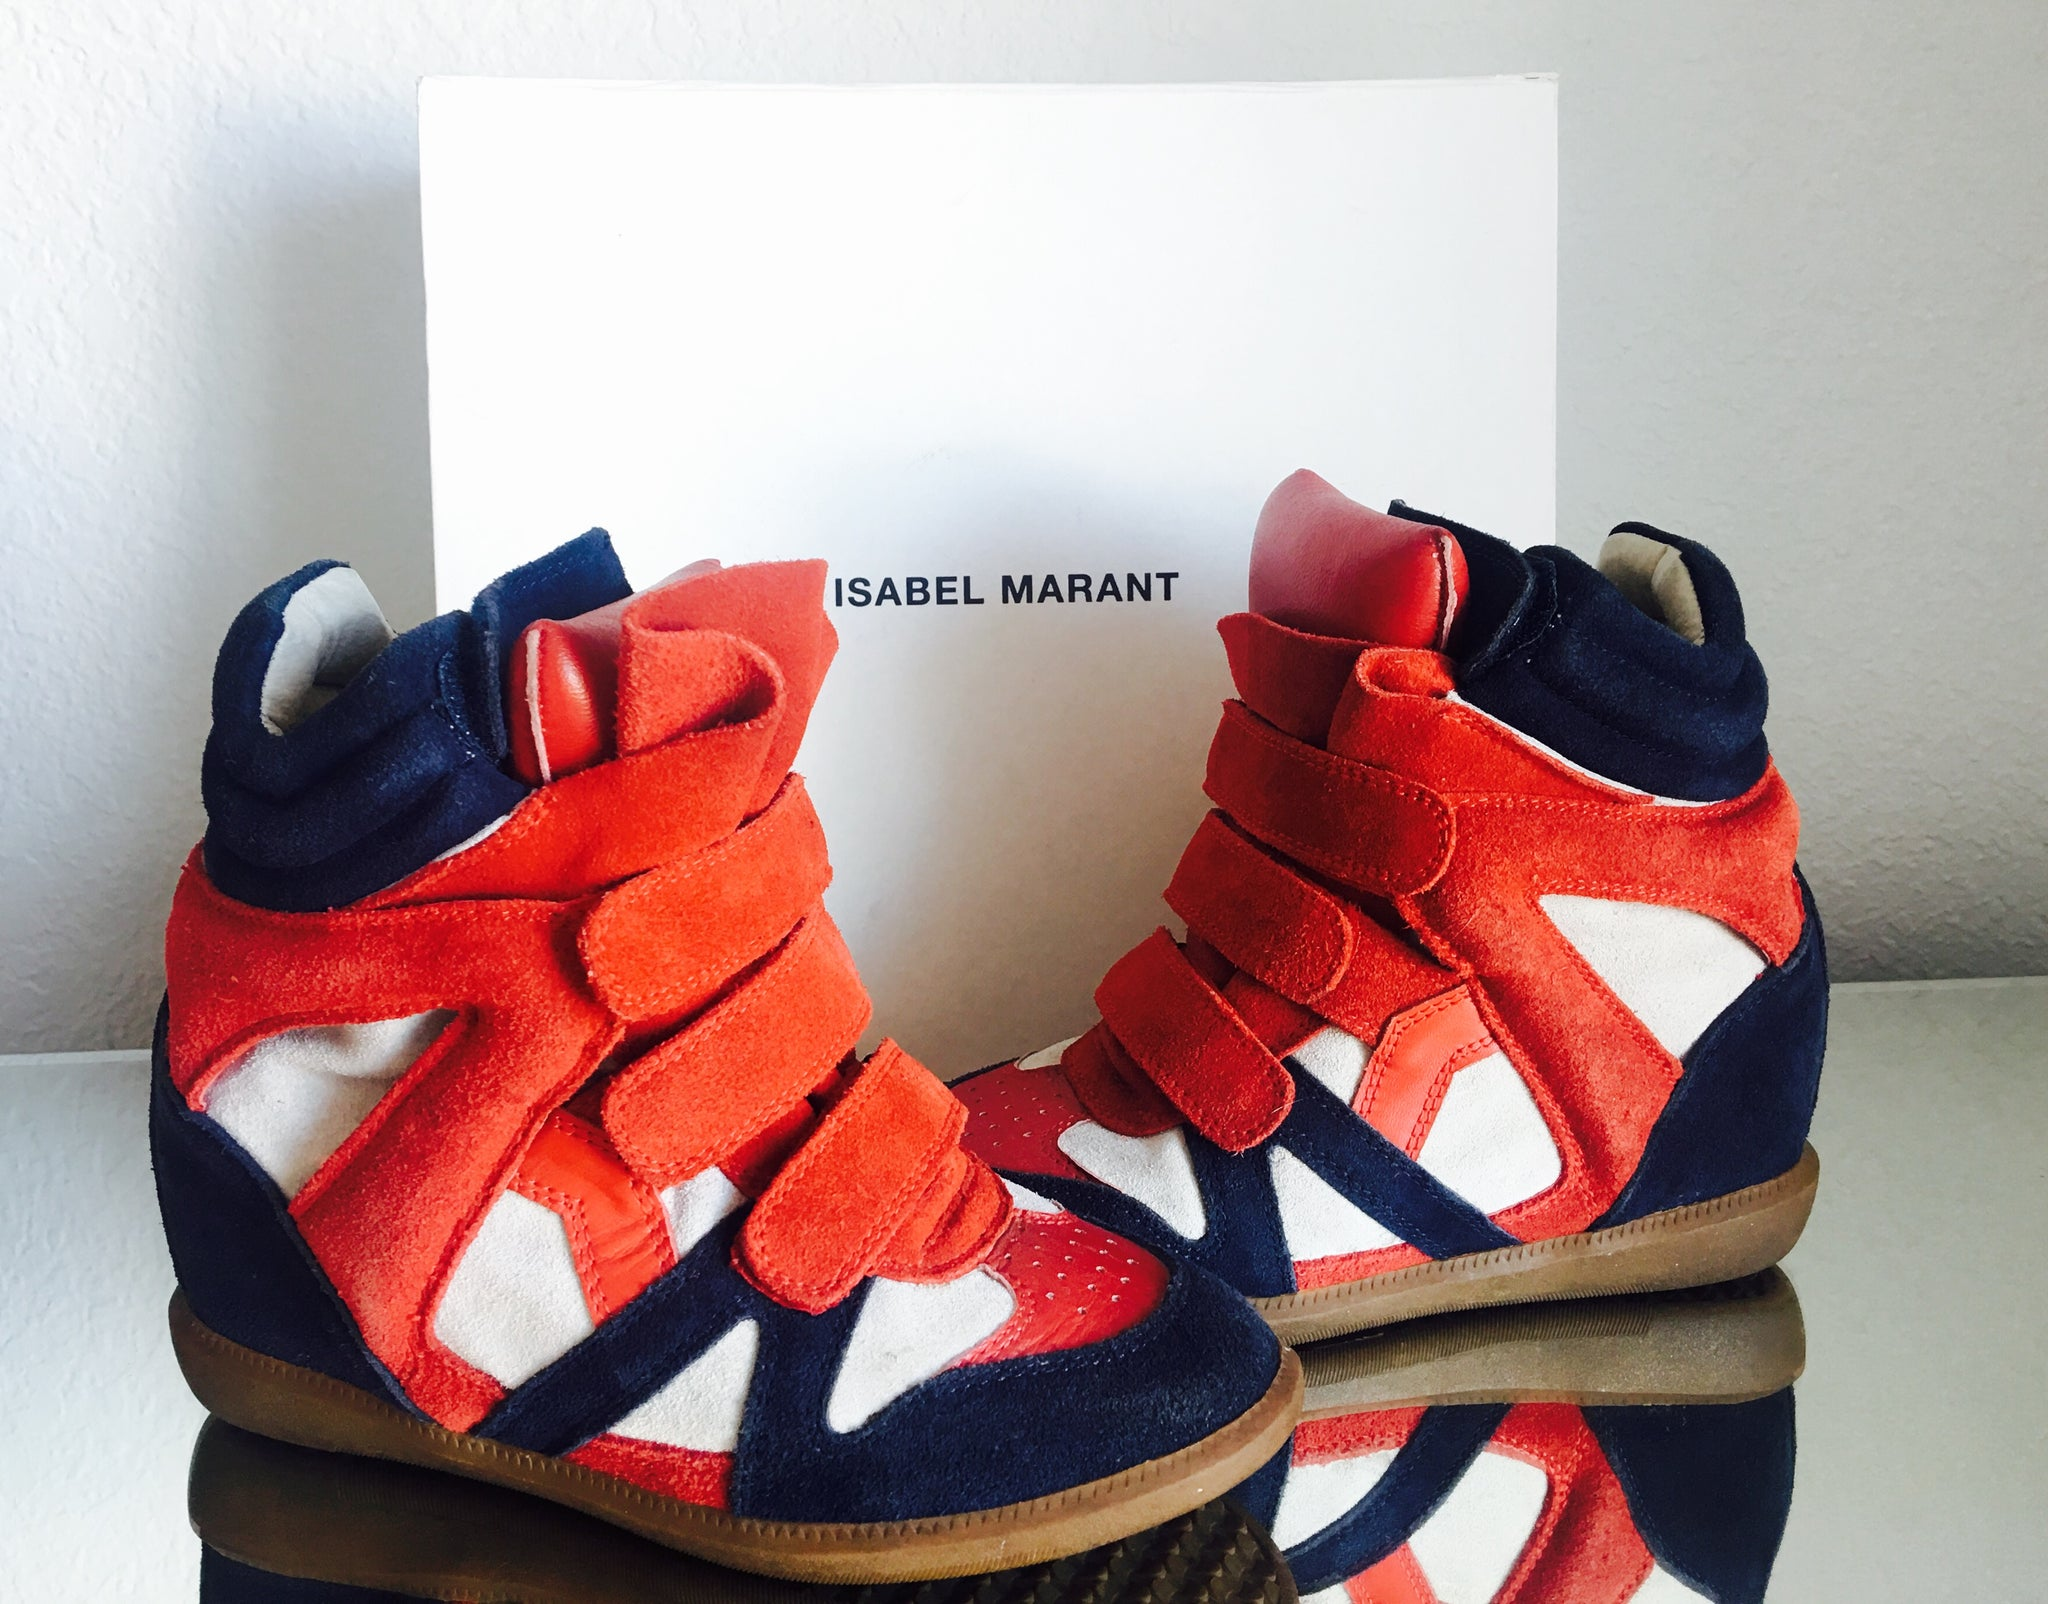 ISABEL MARANT BEKETT WEDGE SNEAKERS